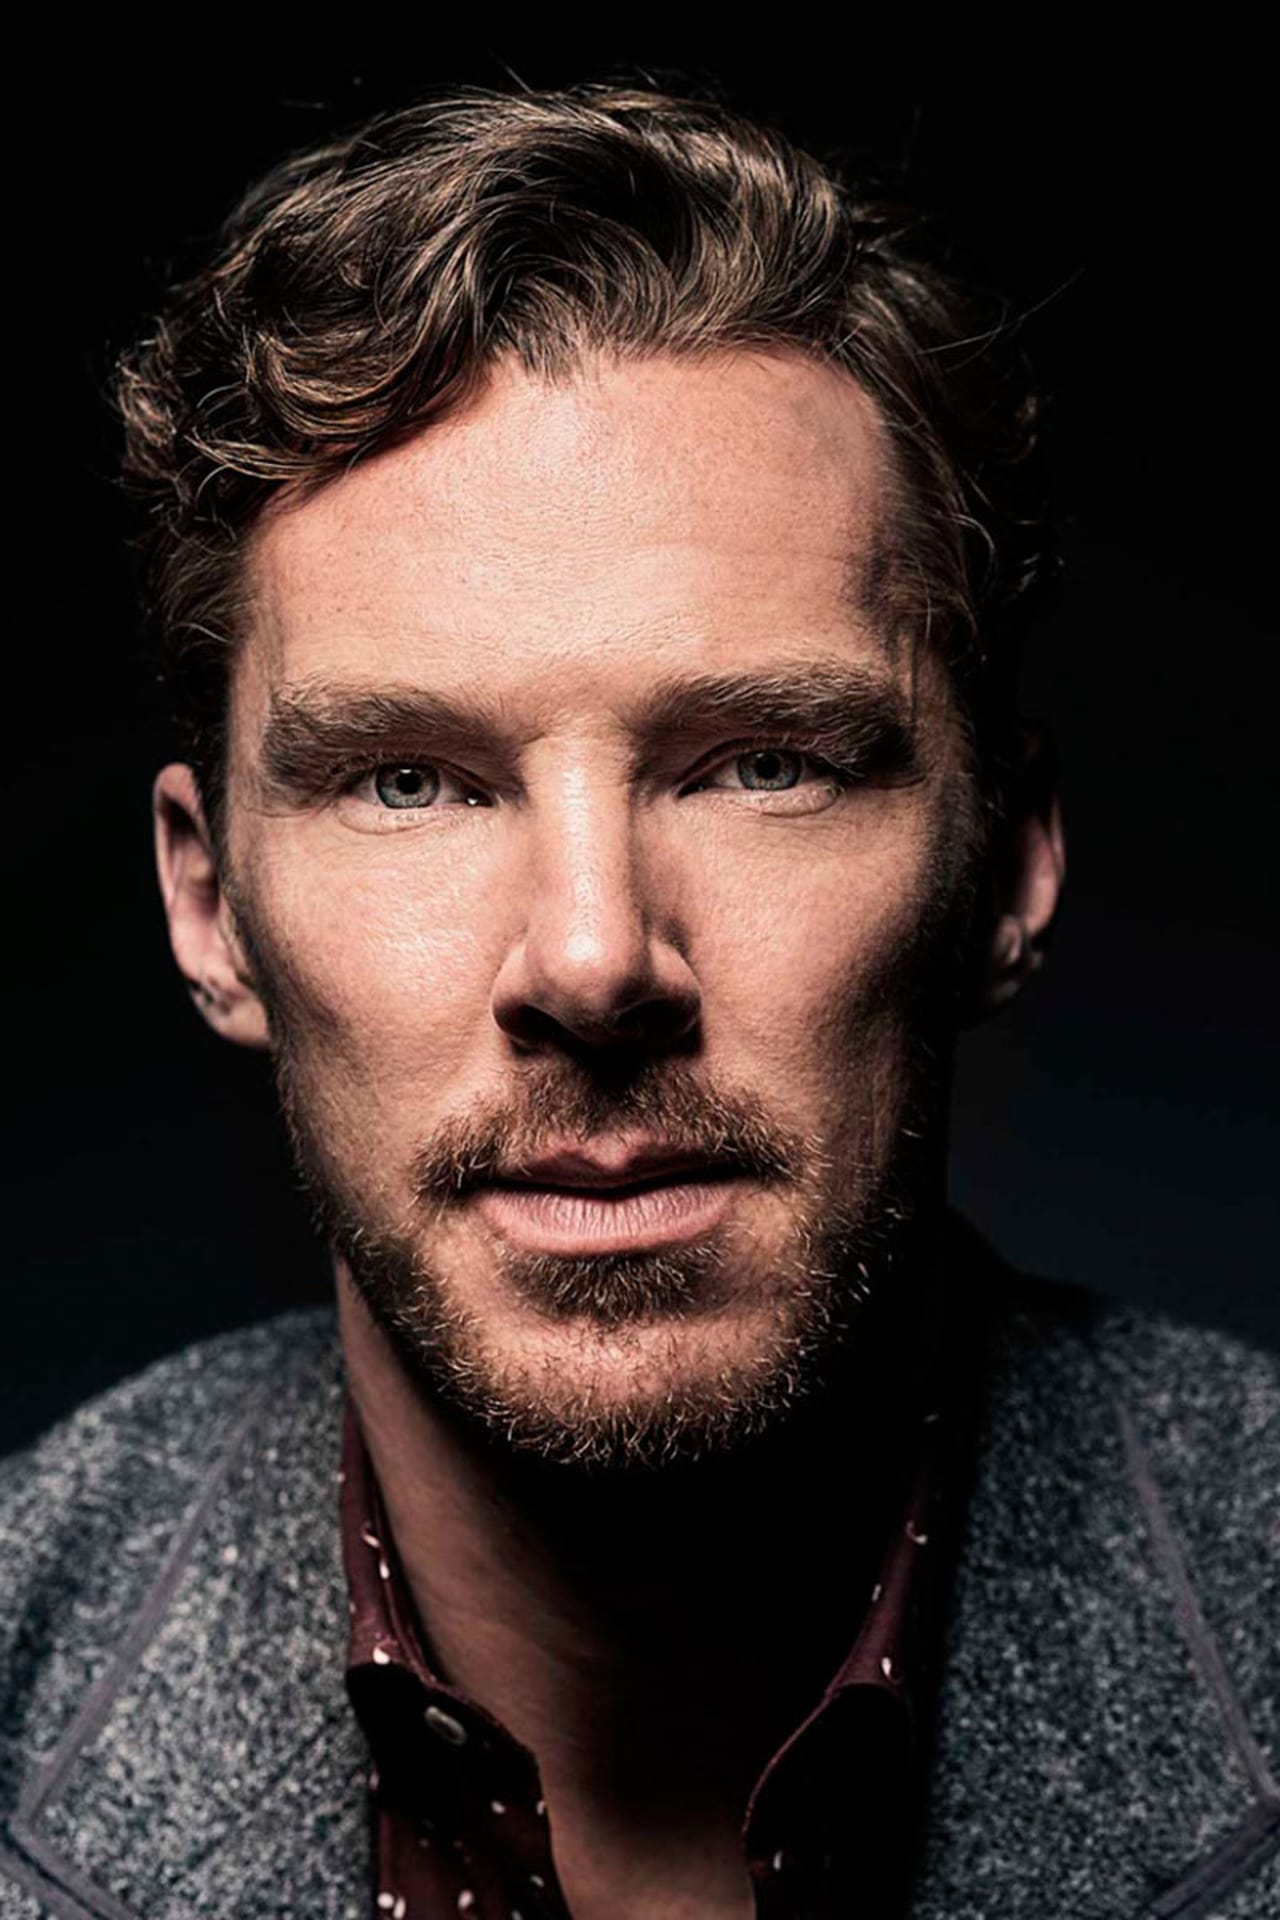 Benedict Cumberbatch isGrinch (voice)